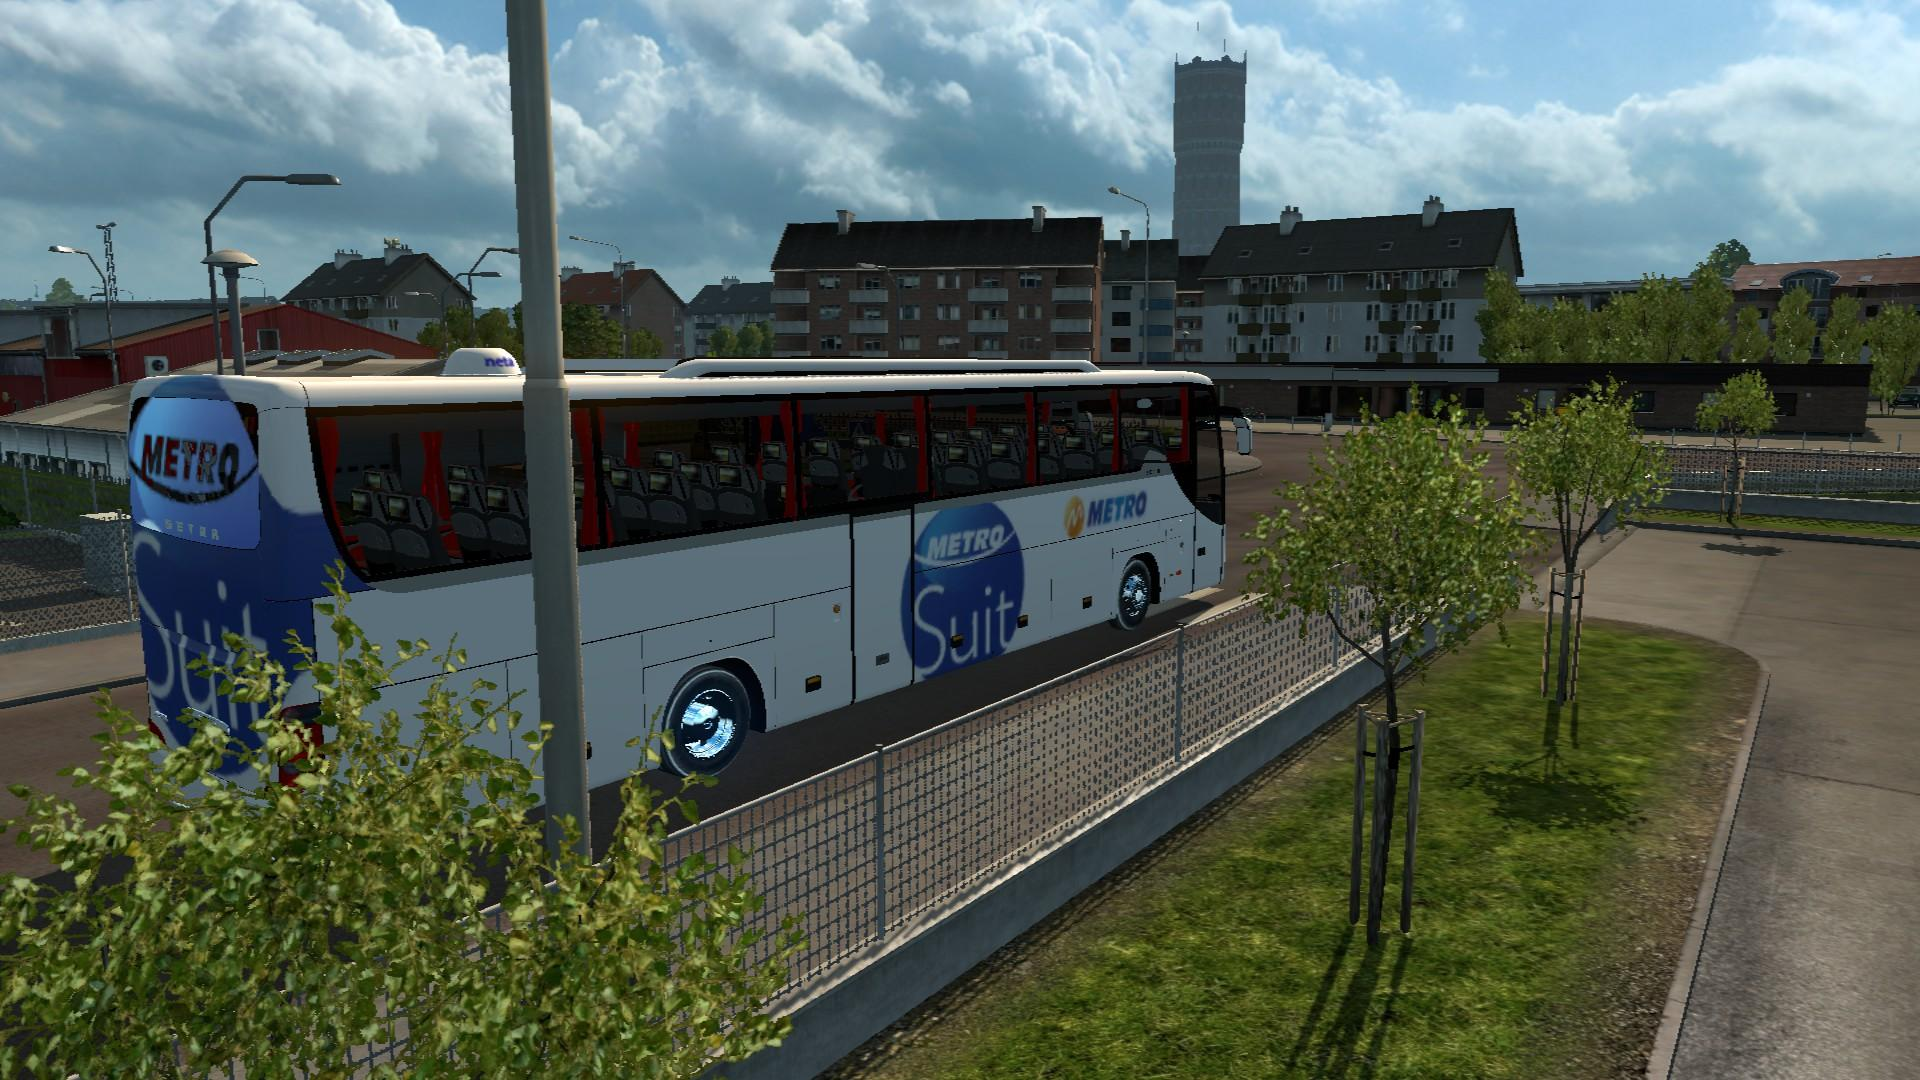 metro-suit-skin-for-setra-416-gt-hd-1-21_2